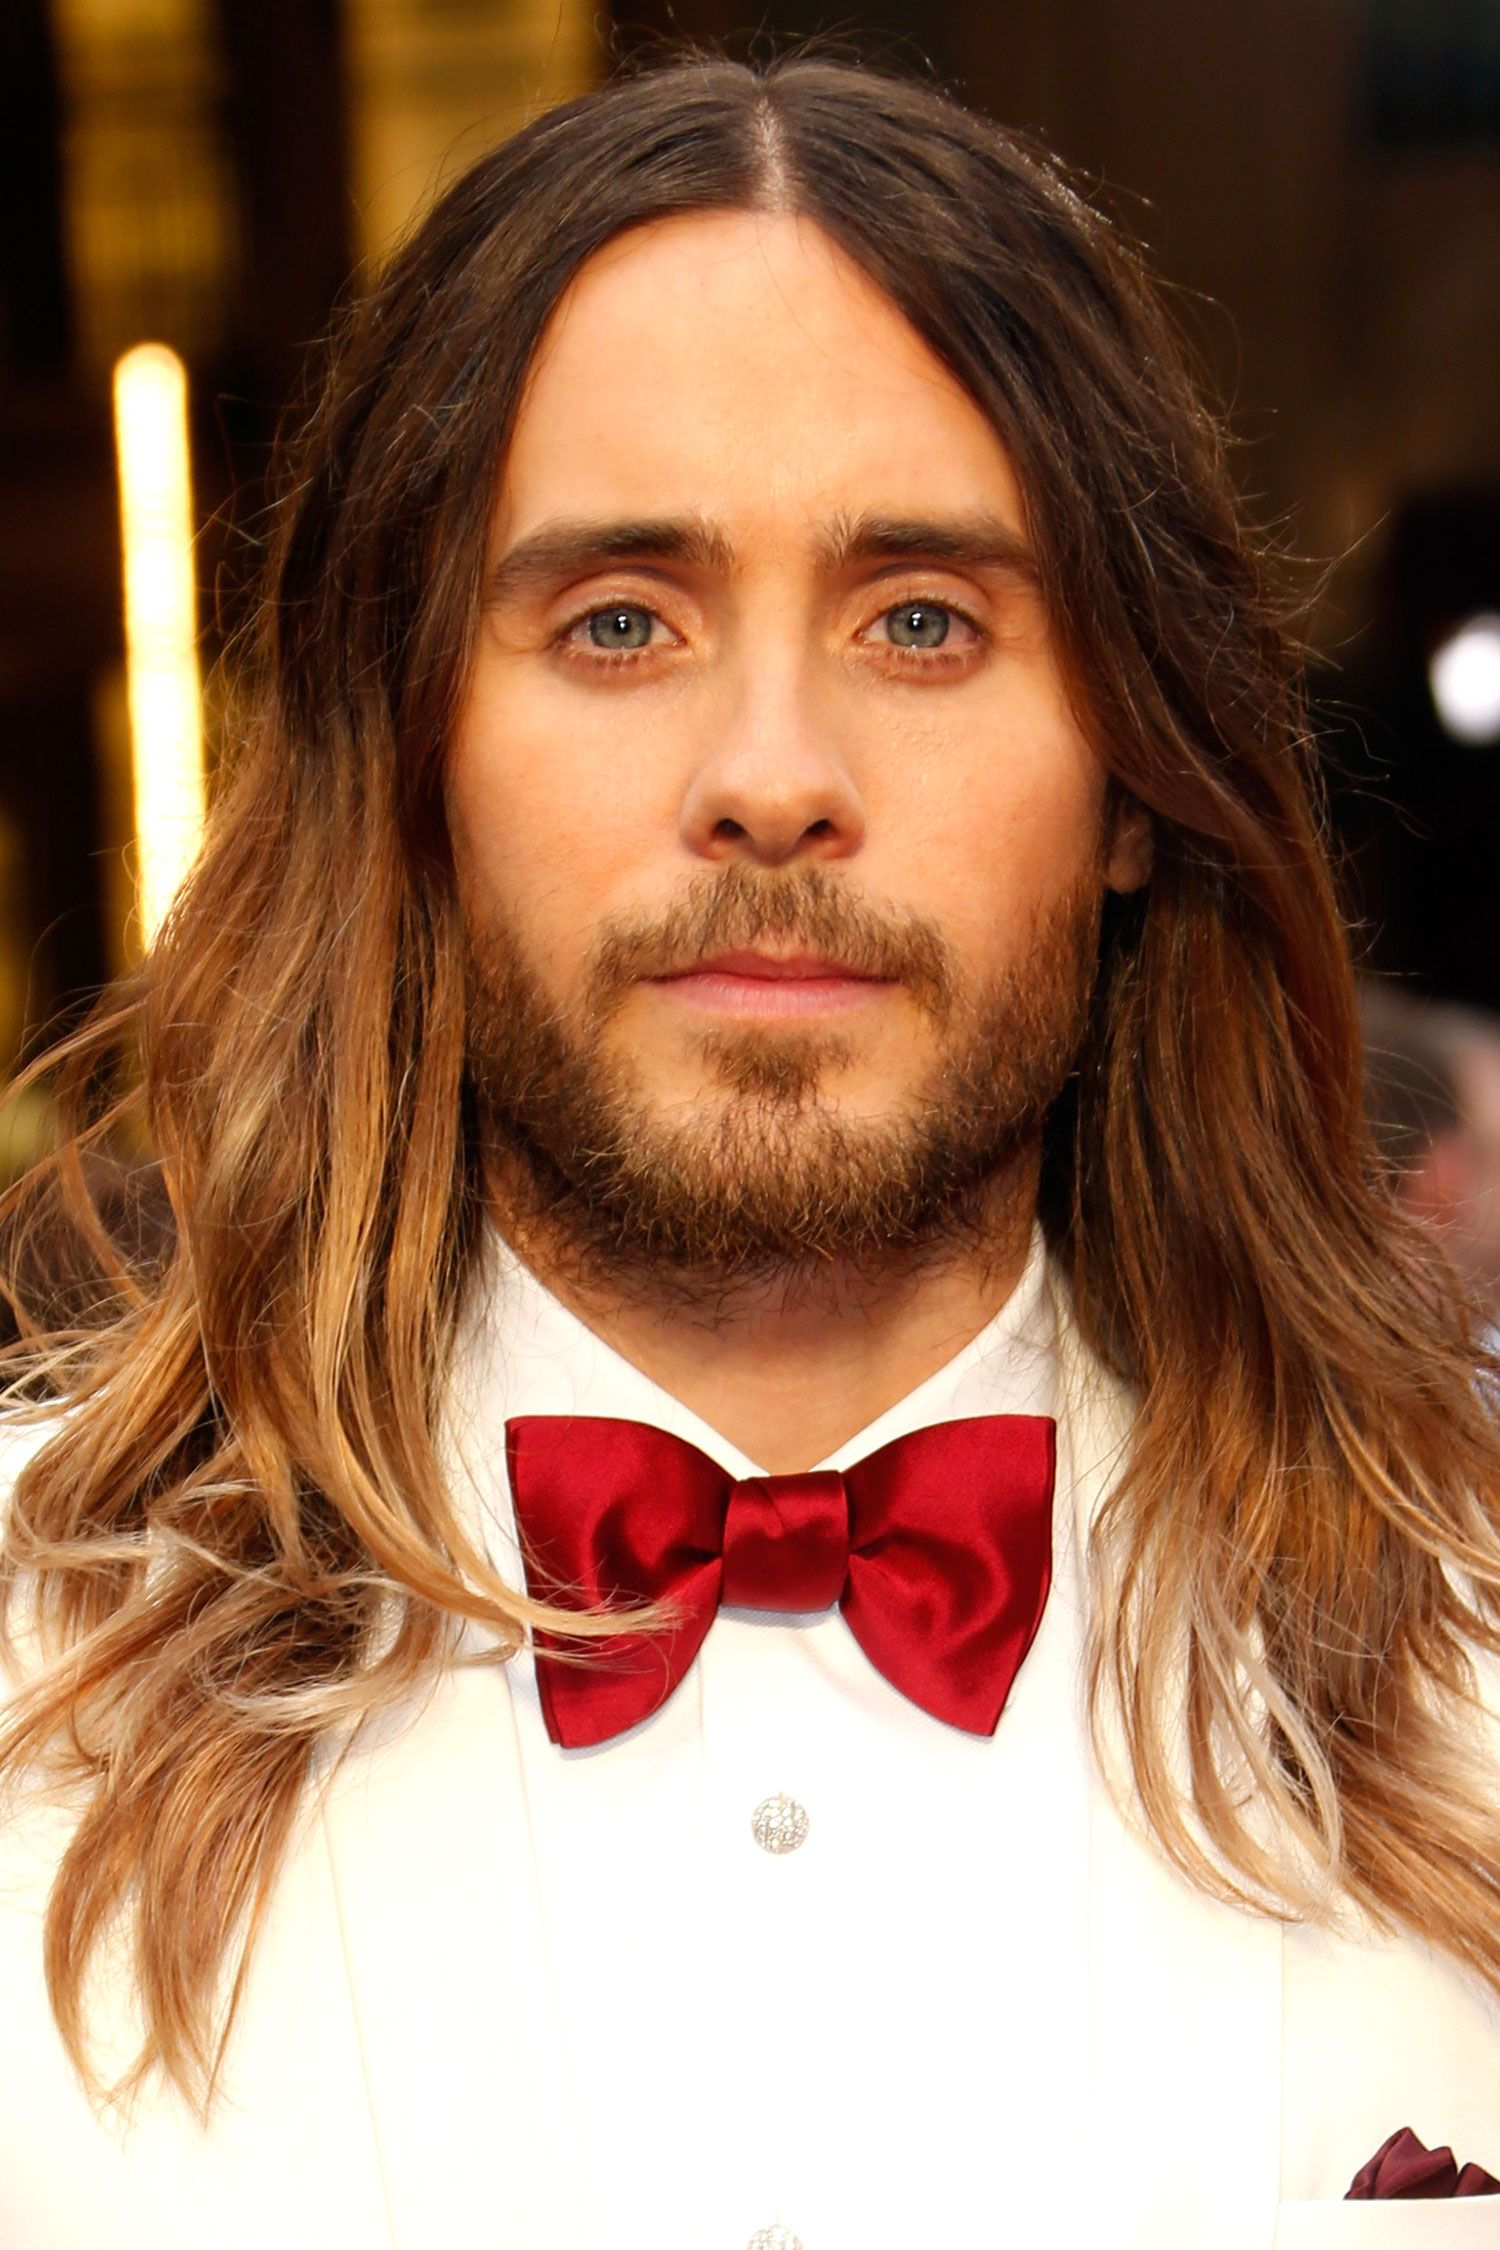 How To Get Jared Leto's Envy-Inducing Hair